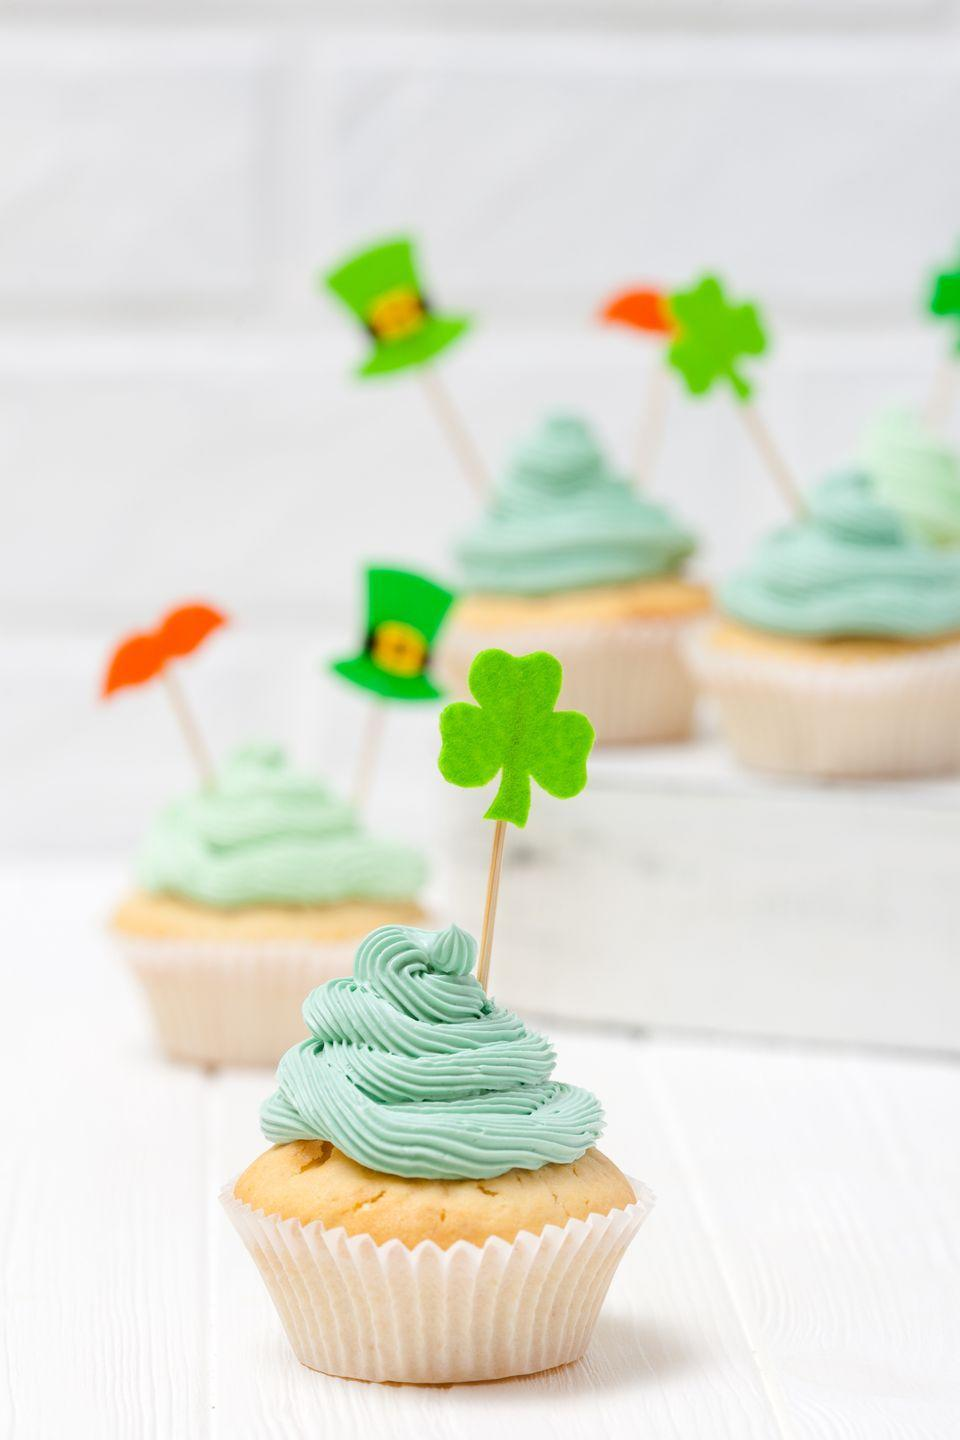 """<p>Whether it's shamrock-shaped cookies, green cupcakes, or <a href=""""https://www.countryliving.com/food-drinks/g2262/st-patricks-day-boozy-desserts/"""" rel=""""nofollow noopener"""" target=""""_blank"""" data-ylk=""""slk:boozy St. Patrick's Day desserts"""" class=""""link rapid-noclick-resp"""">boozy St. Patrick's Day desserts</a>, satisfy your sweet tooth this St. Paddy's Day with a selection of sweet, festive treats.</p><p><a class=""""link rapid-noclick-resp"""" href=""""https://www.amazon.com/Donoter-Cupcake-Shamrock-St-Patricks-Decoration/dp/B07MLWL4JP/?tag=syn-yahoo-20&ascsubtag=%5Bartid%7C10050.g.30796247%5Bsrc%7Cyahoo-us"""" rel=""""nofollow noopener"""" target=""""_blank"""" data-ylk=""""slk:SHOP CUPCAKE TOPPERS"""">SHOP CUPCAKE TOPPERS</a></p>"""